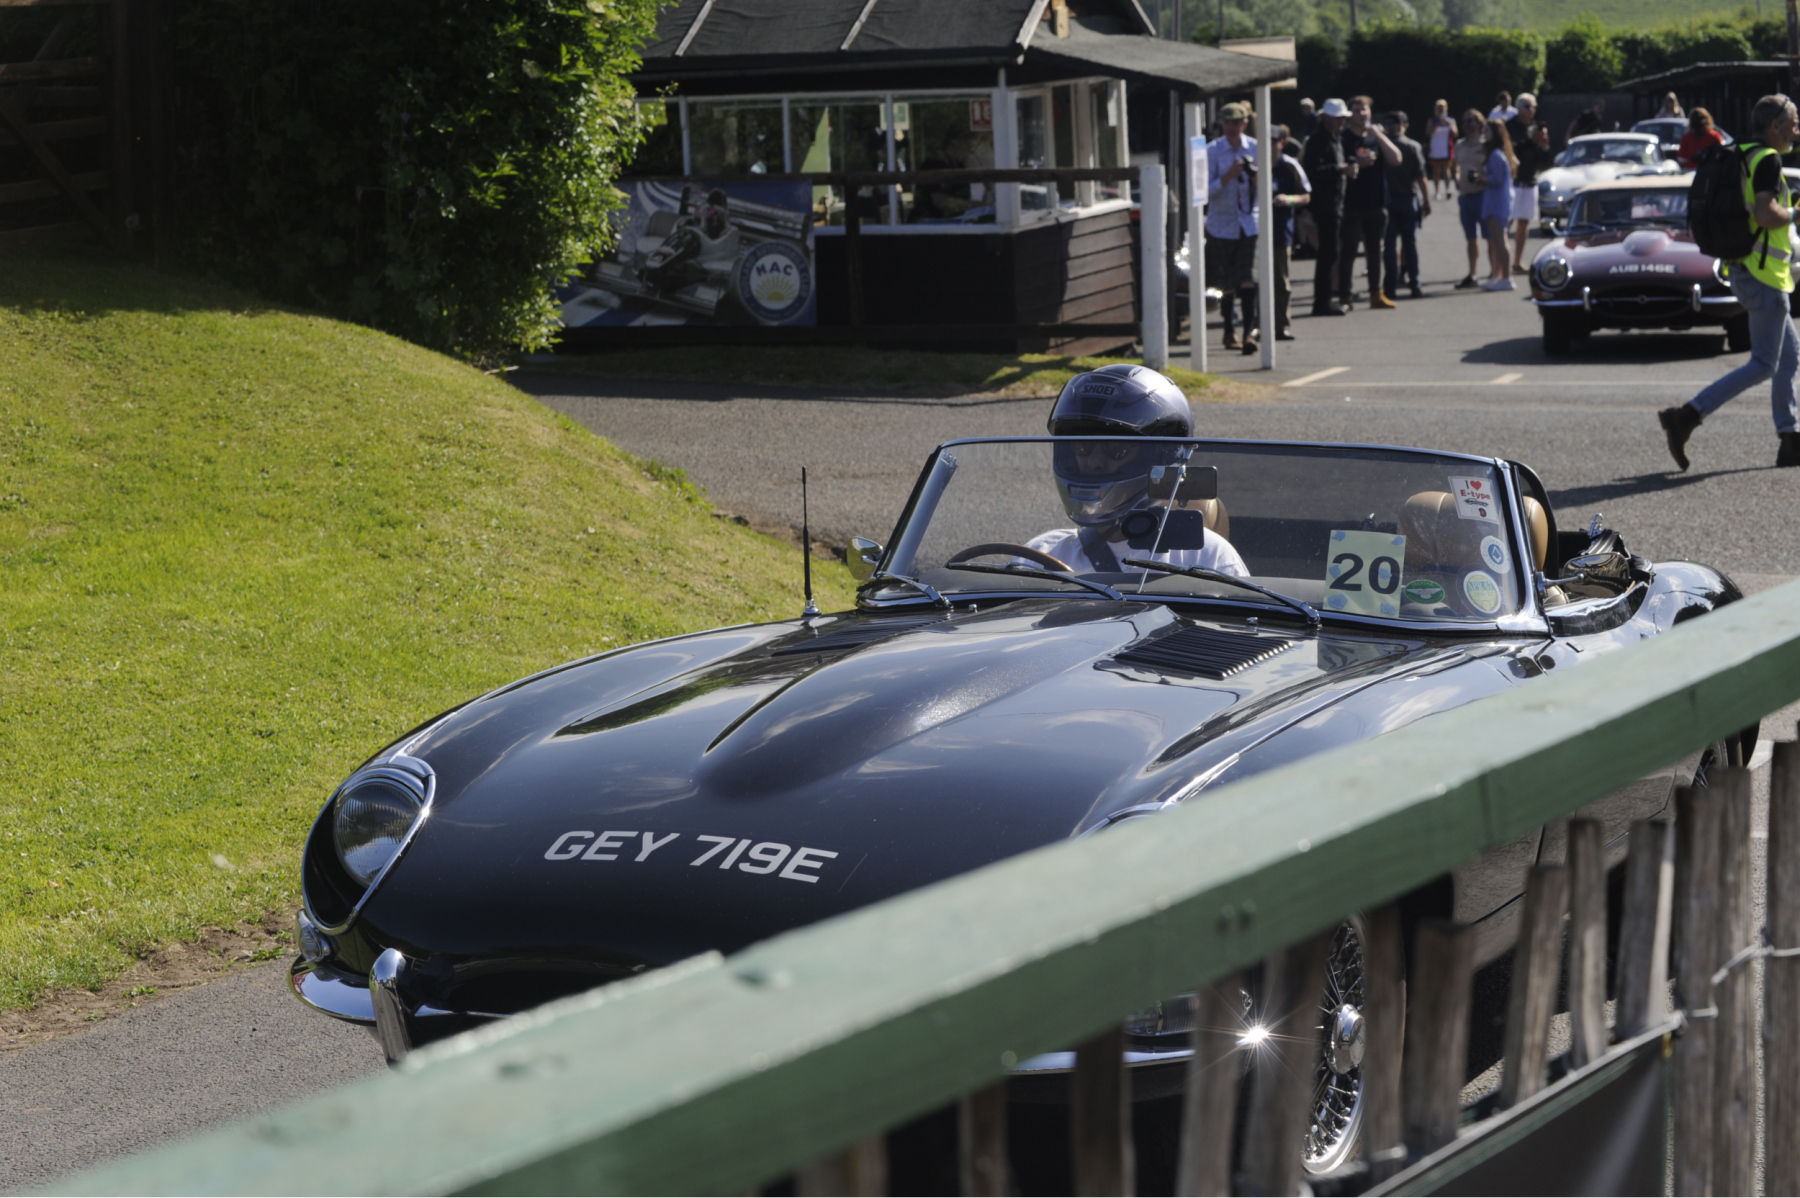 E-type-60-Saturday-photo-by-Abigail-Humphries-19